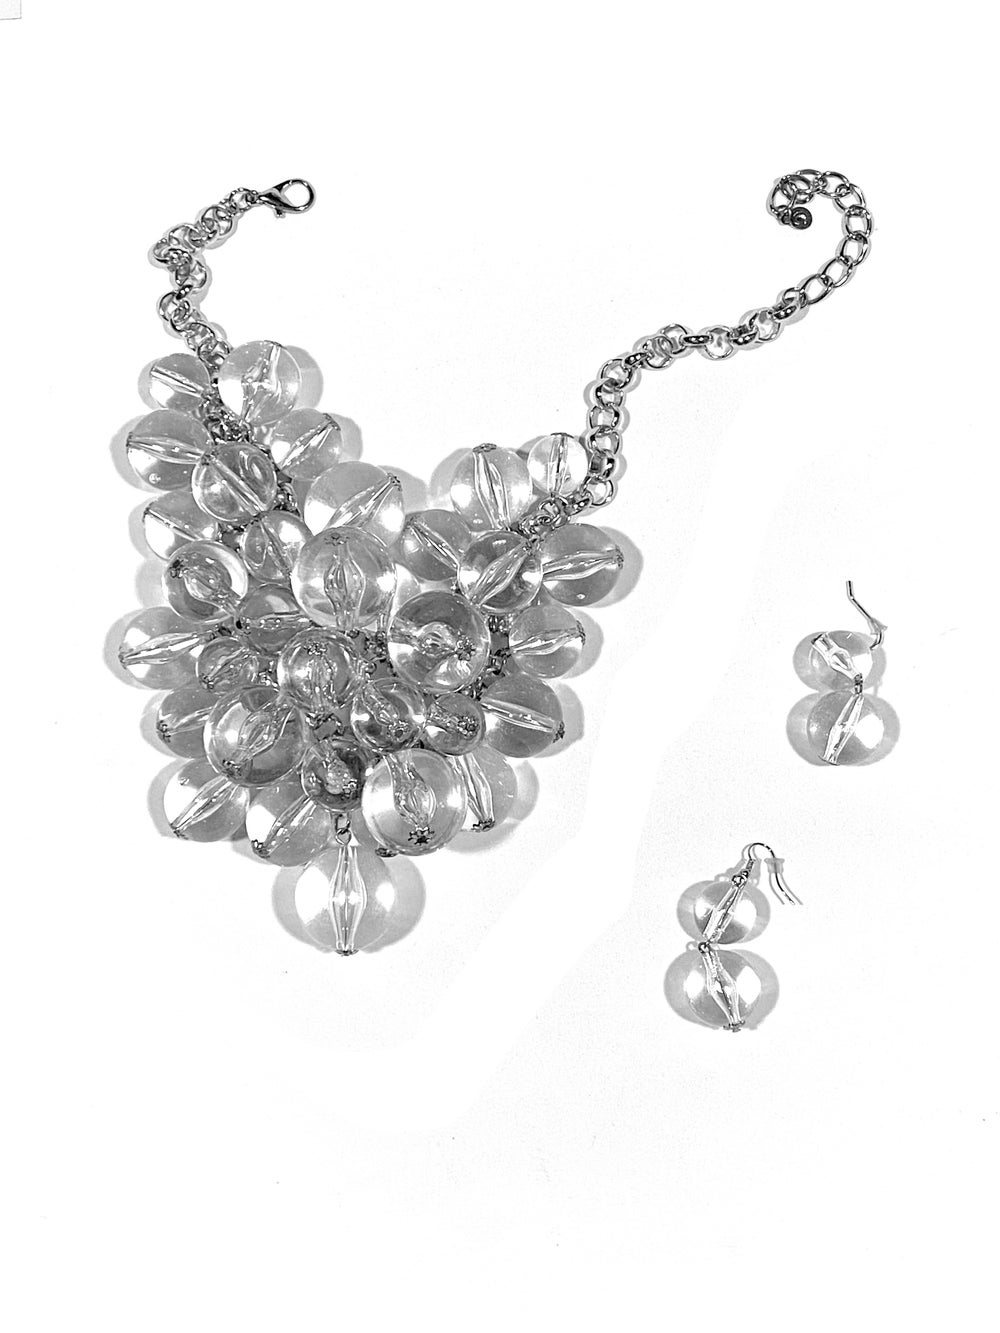 Transparent Pearl Chain + Earrings